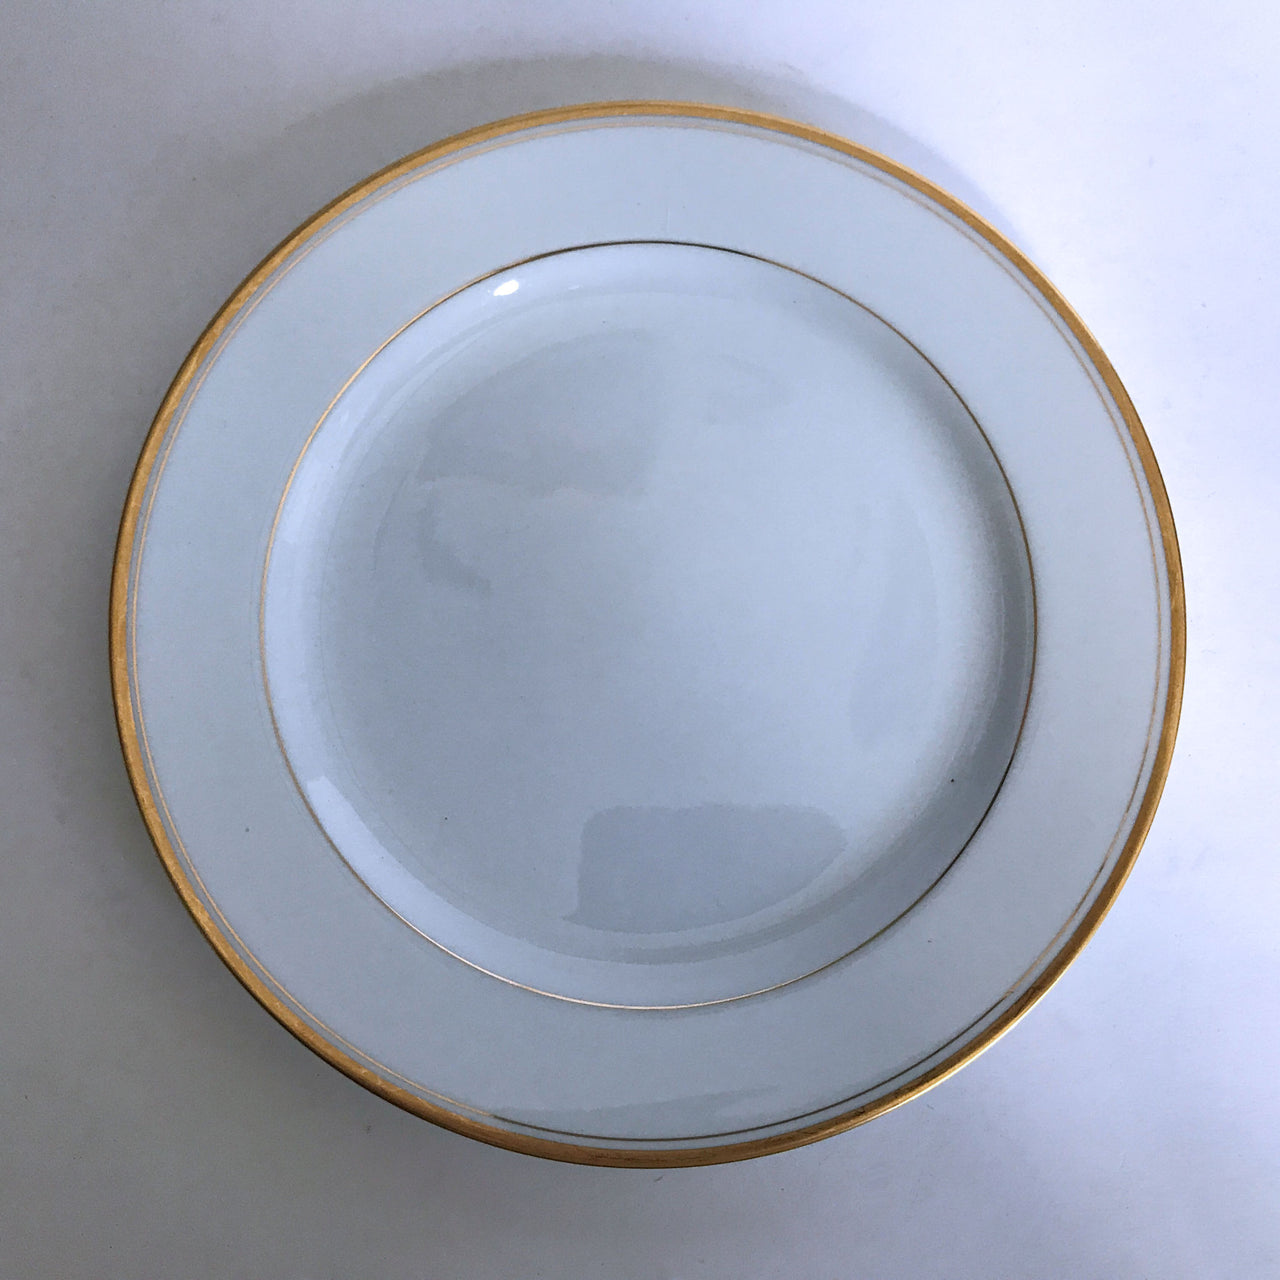 Vintage Noritake Goldlane 5084 Salad Plate White with Gold Trim